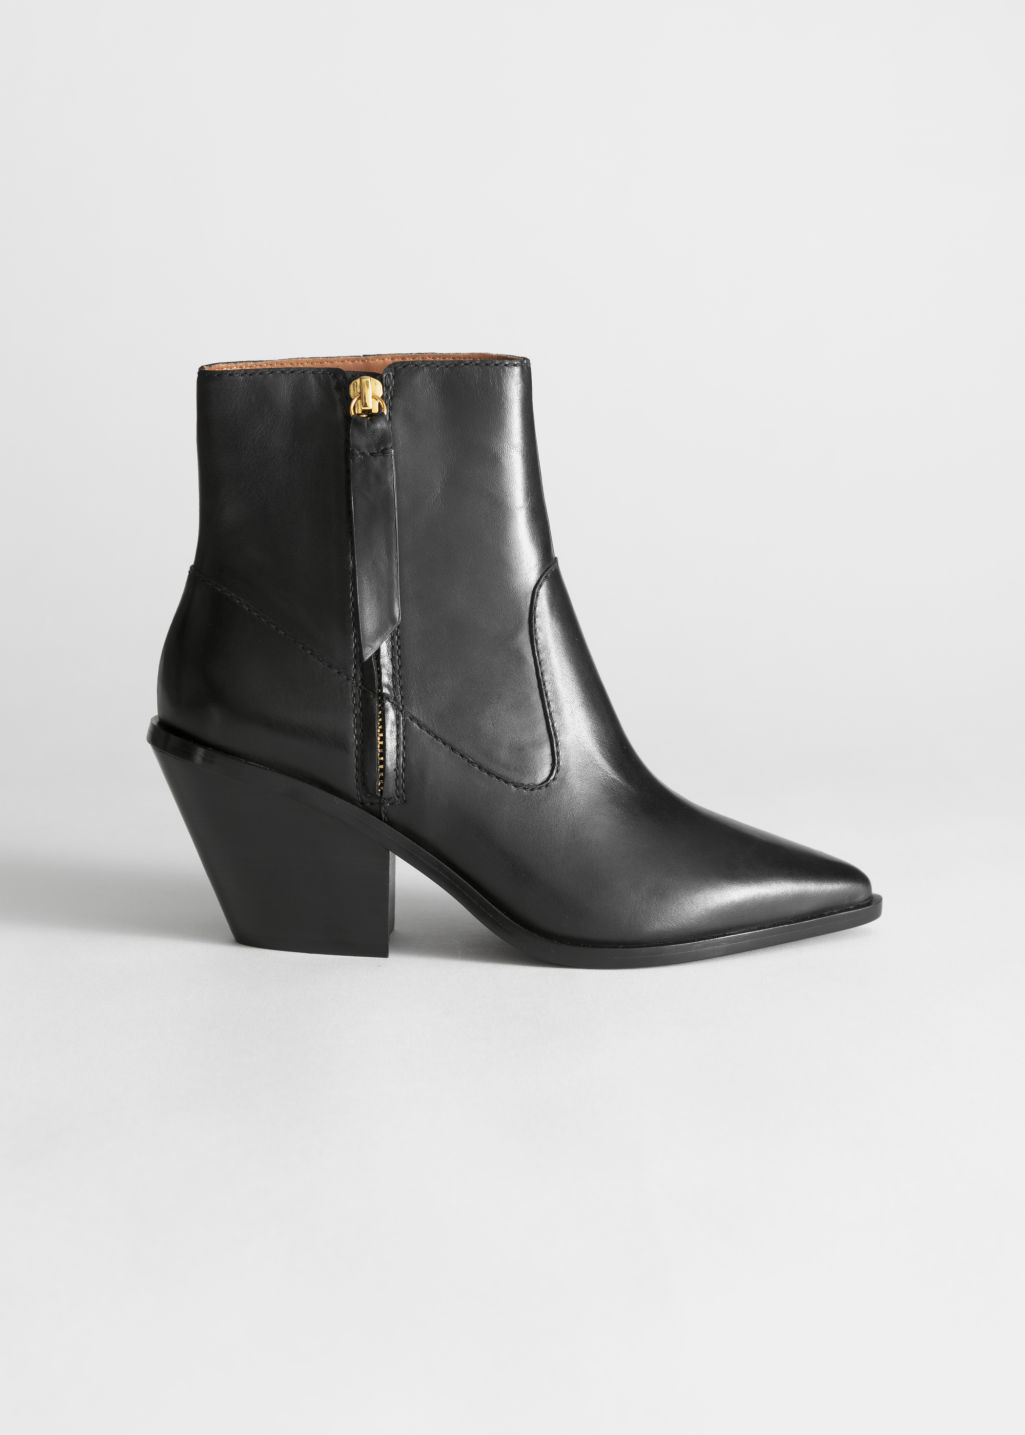 d20c0e47518 Leather Cowboy Ankle Boots - Black - Ankleboots - & Other Stories